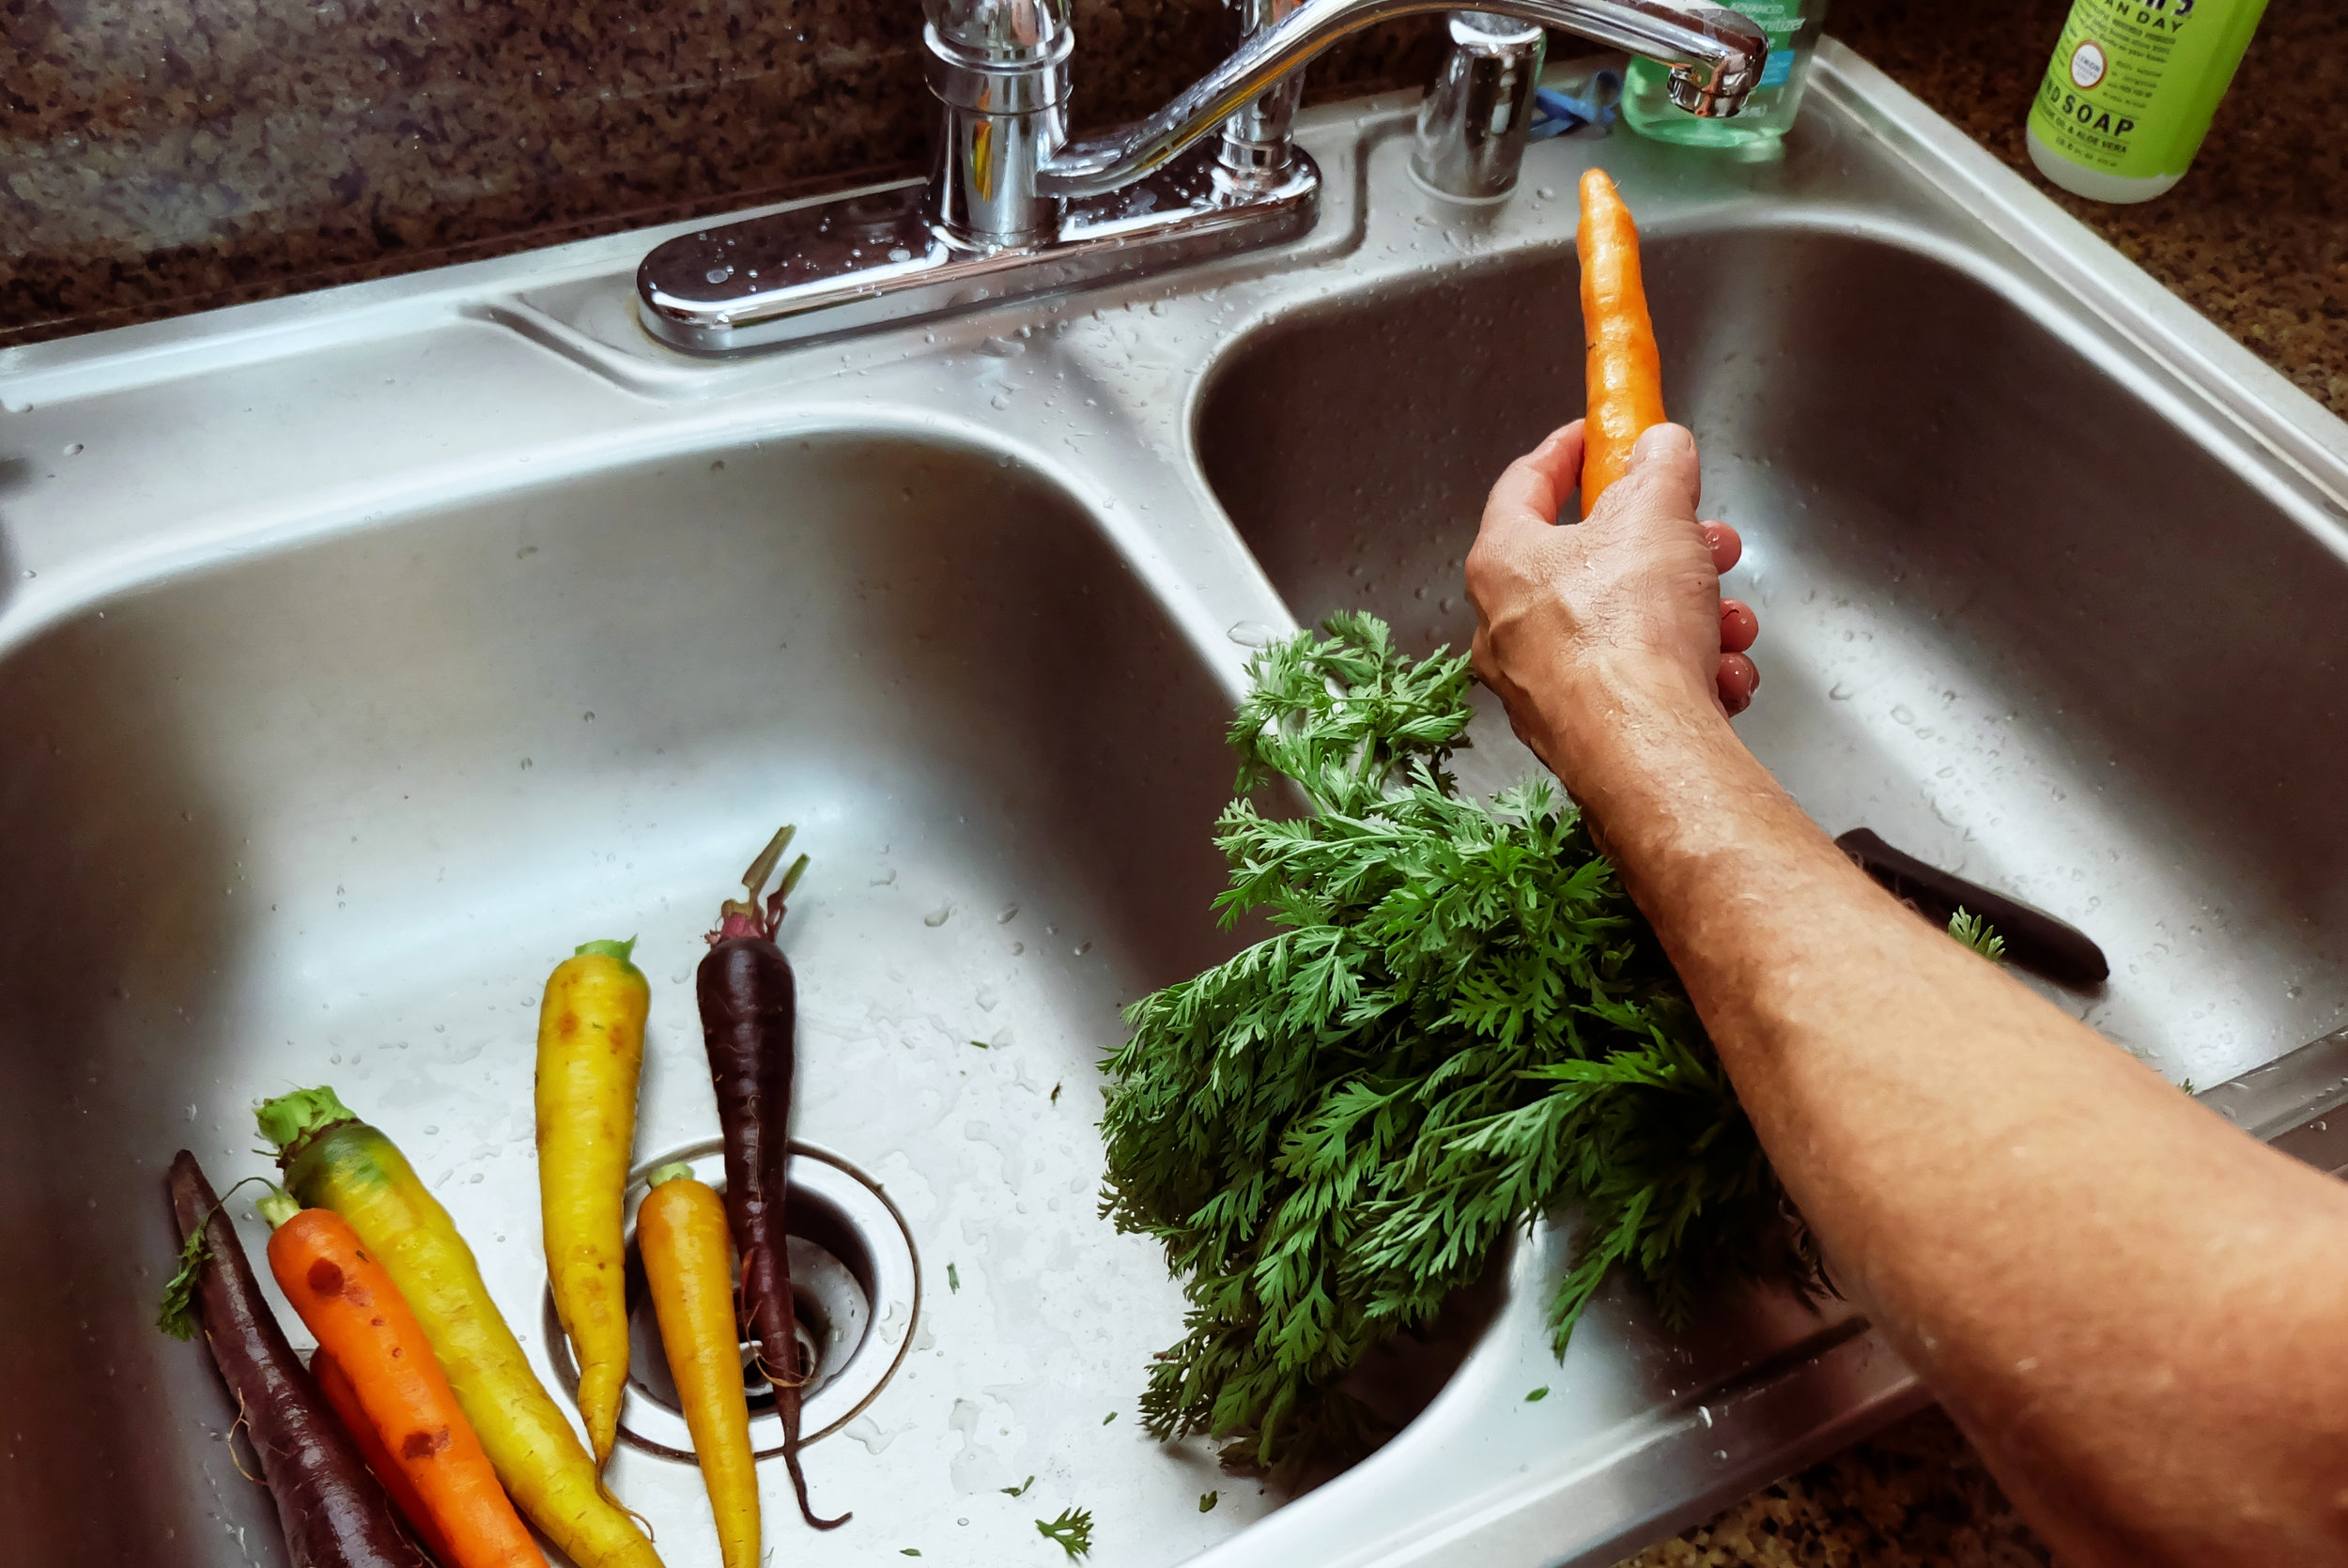 1. - wash and peel the carrots.